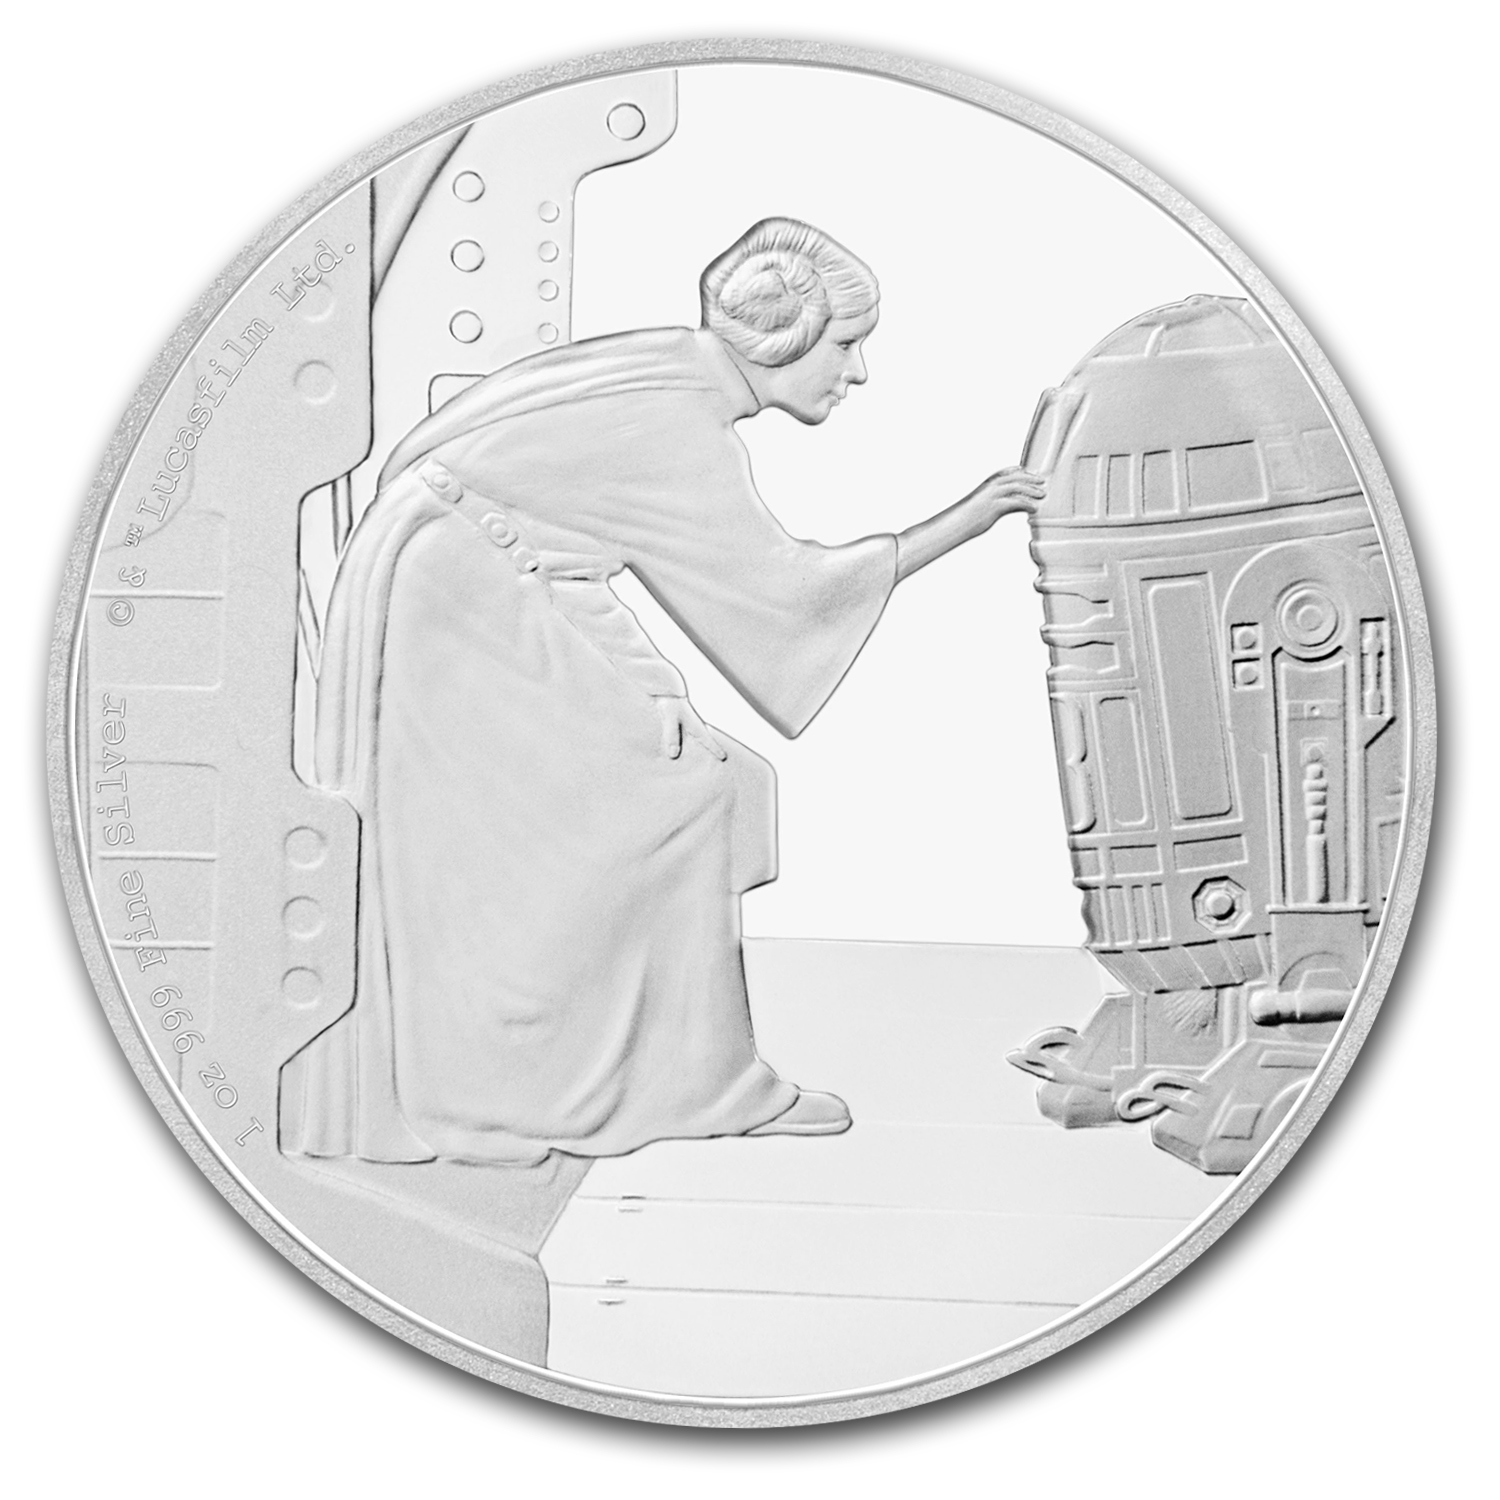 2016 Niue 1 oz Silver $2 Star Wars Princess Leia (w/Box & COA)